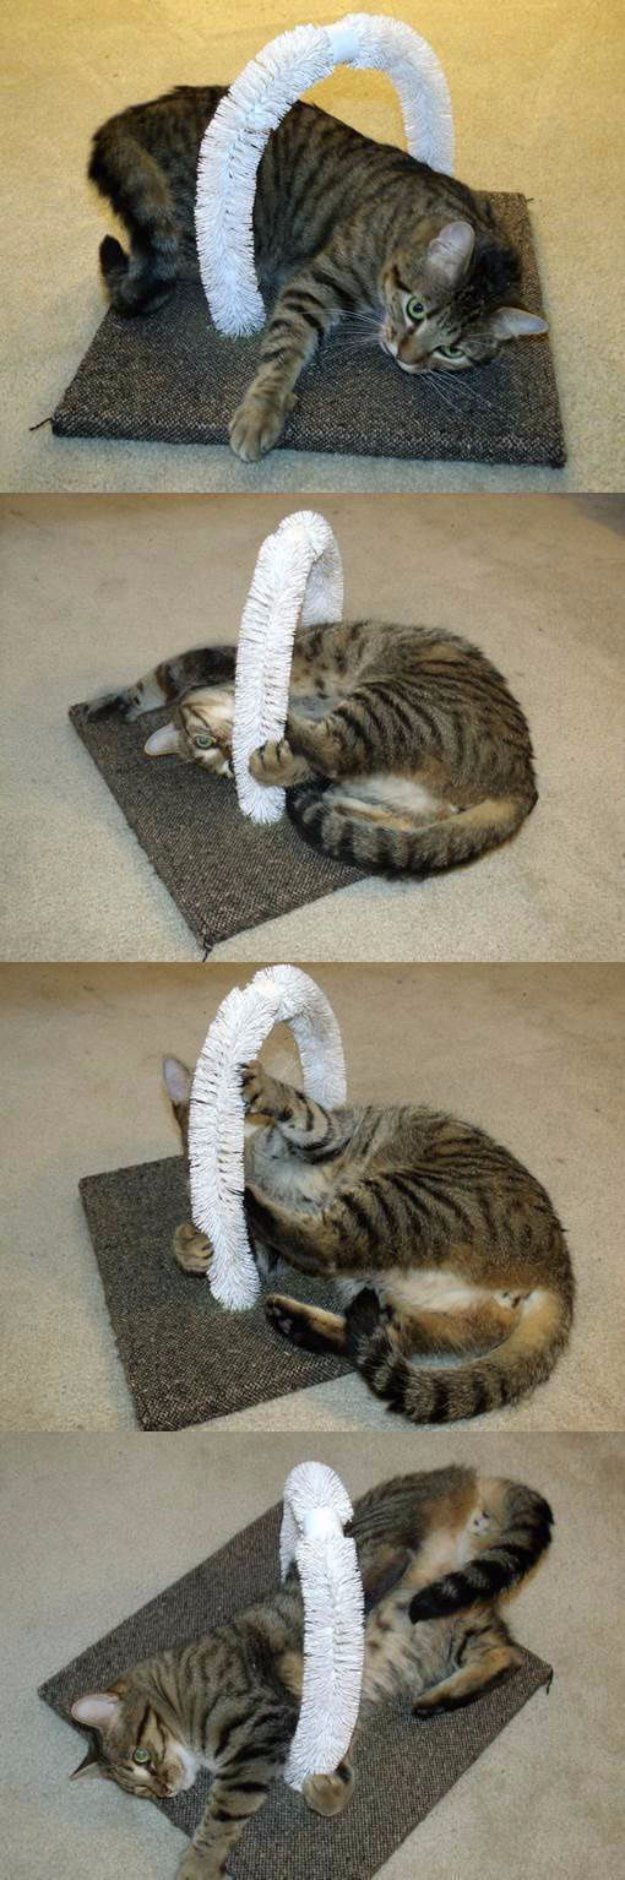 15 Smart DIY Ways To Keep Your Cat Entertained In Your